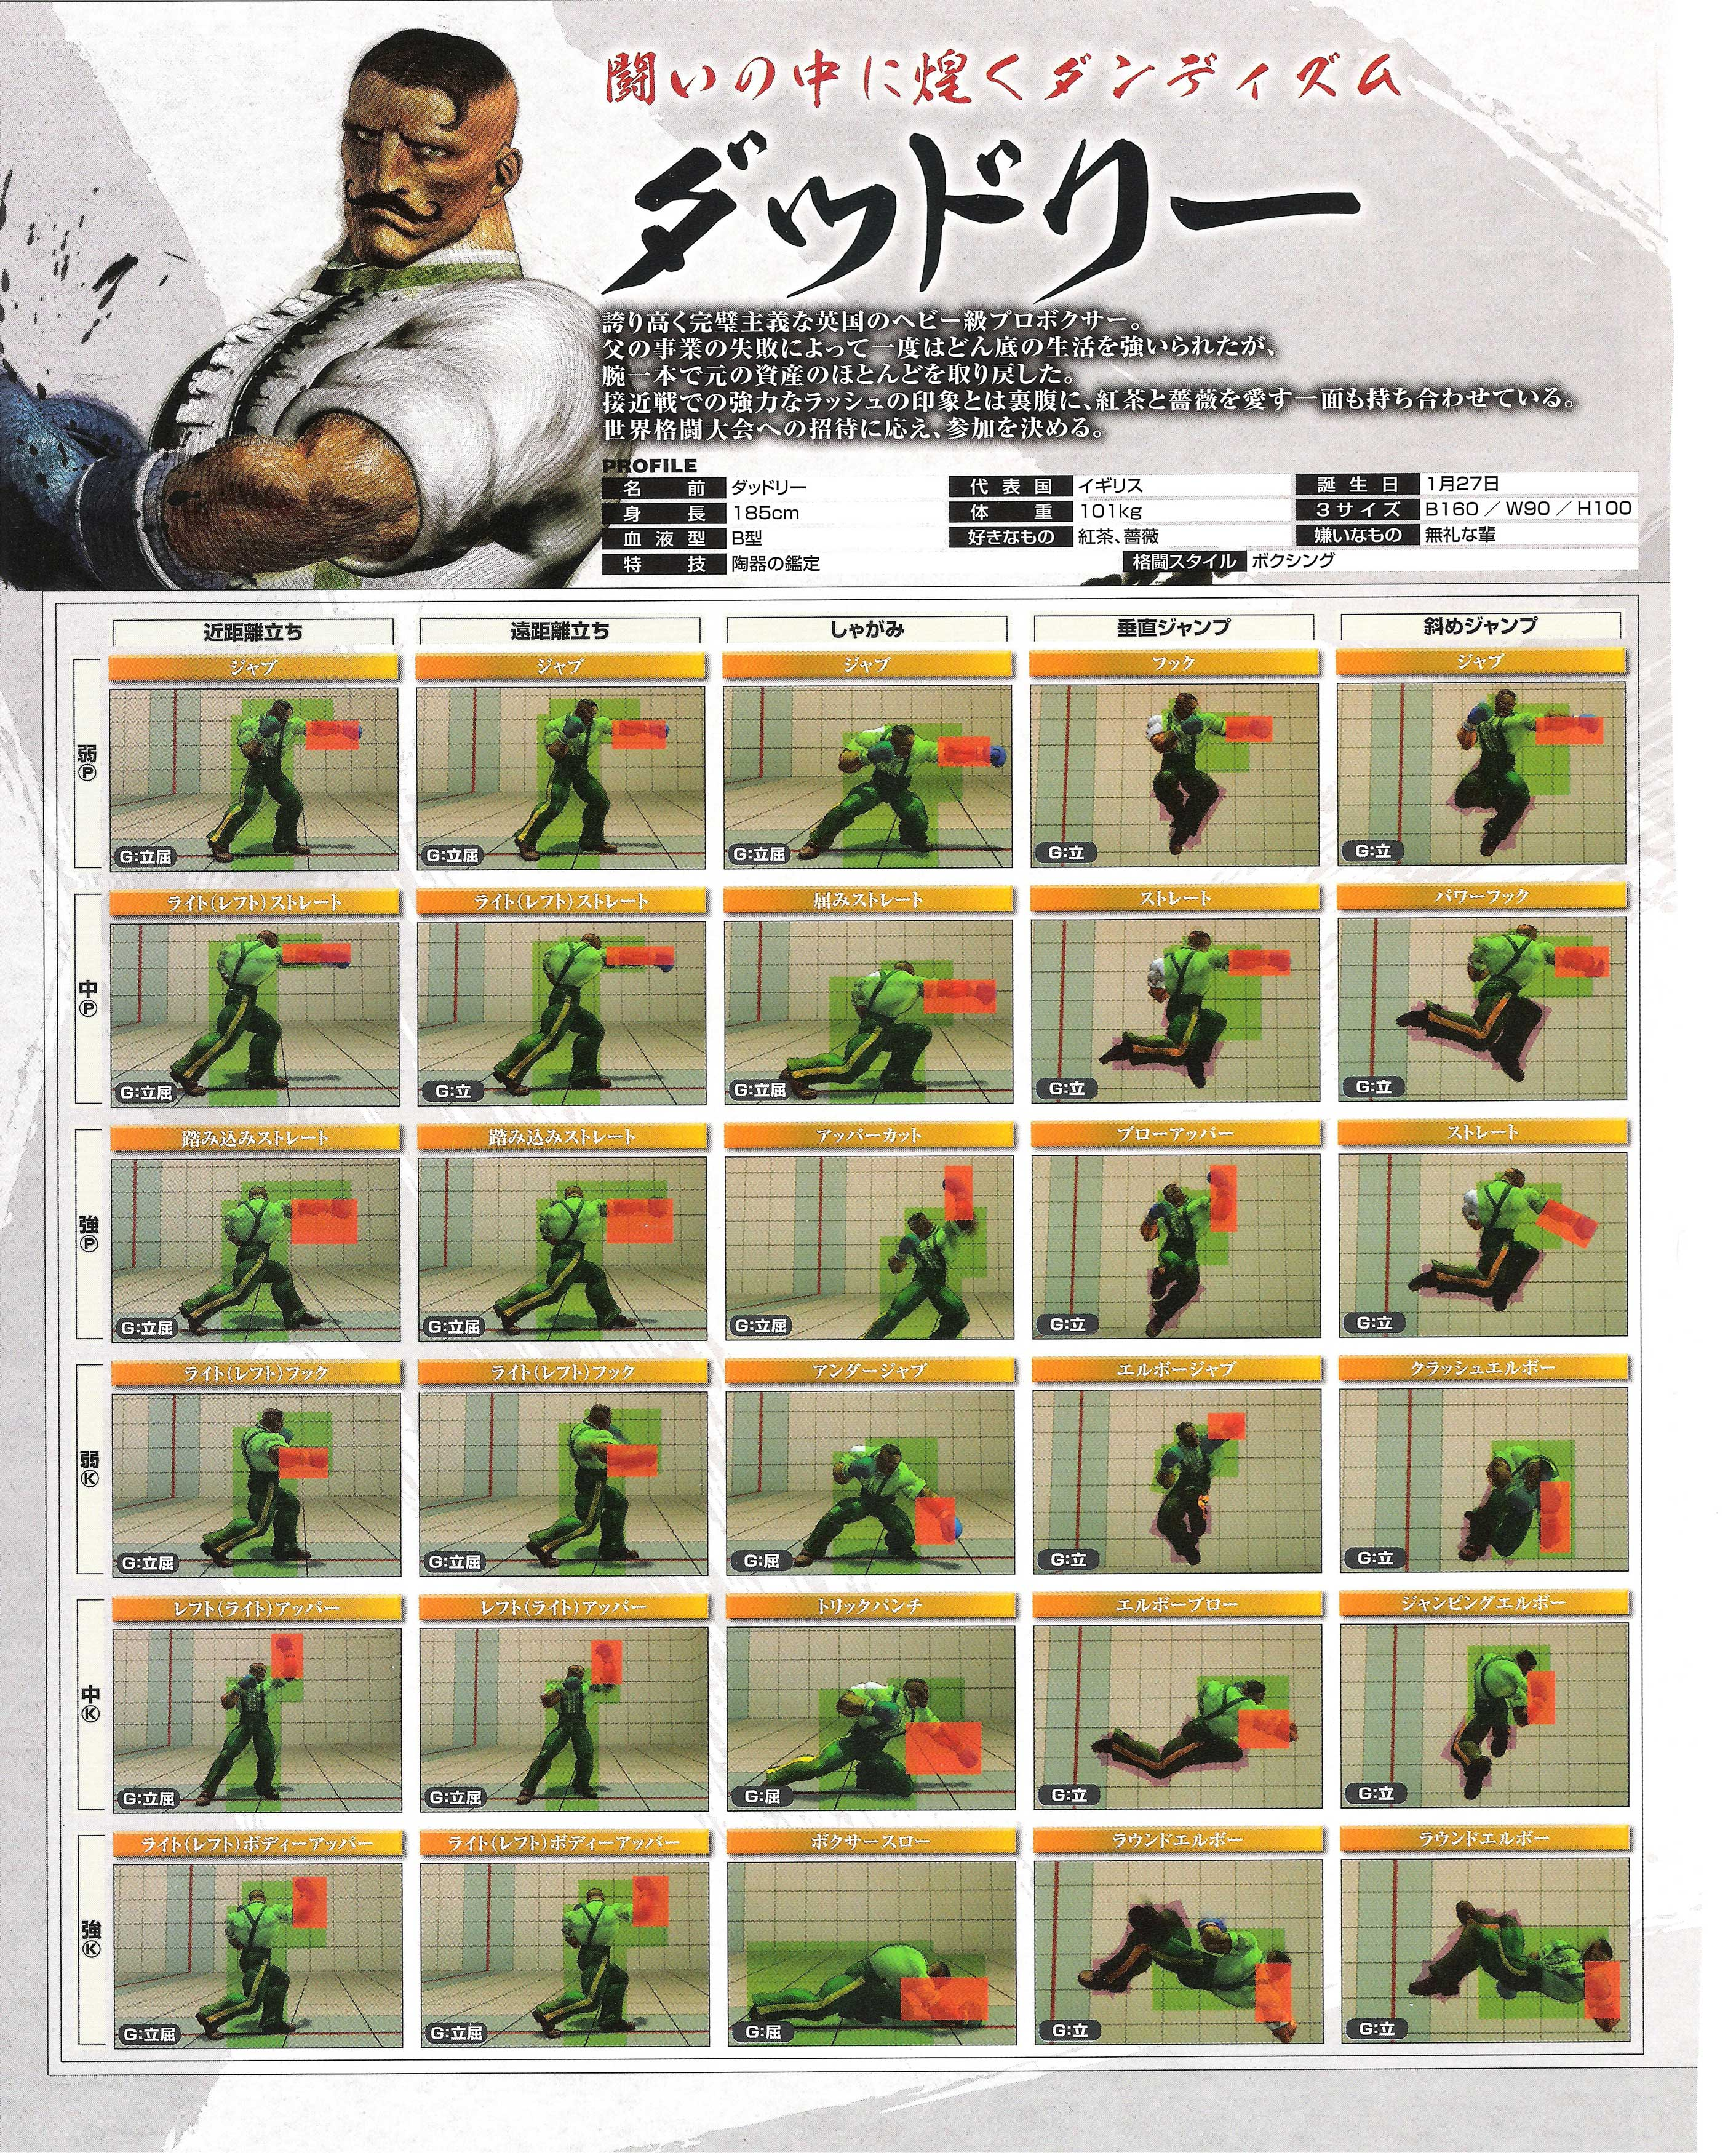 Dudley's hit box information for Super Street Fighter 4 Arcade Edition image #1